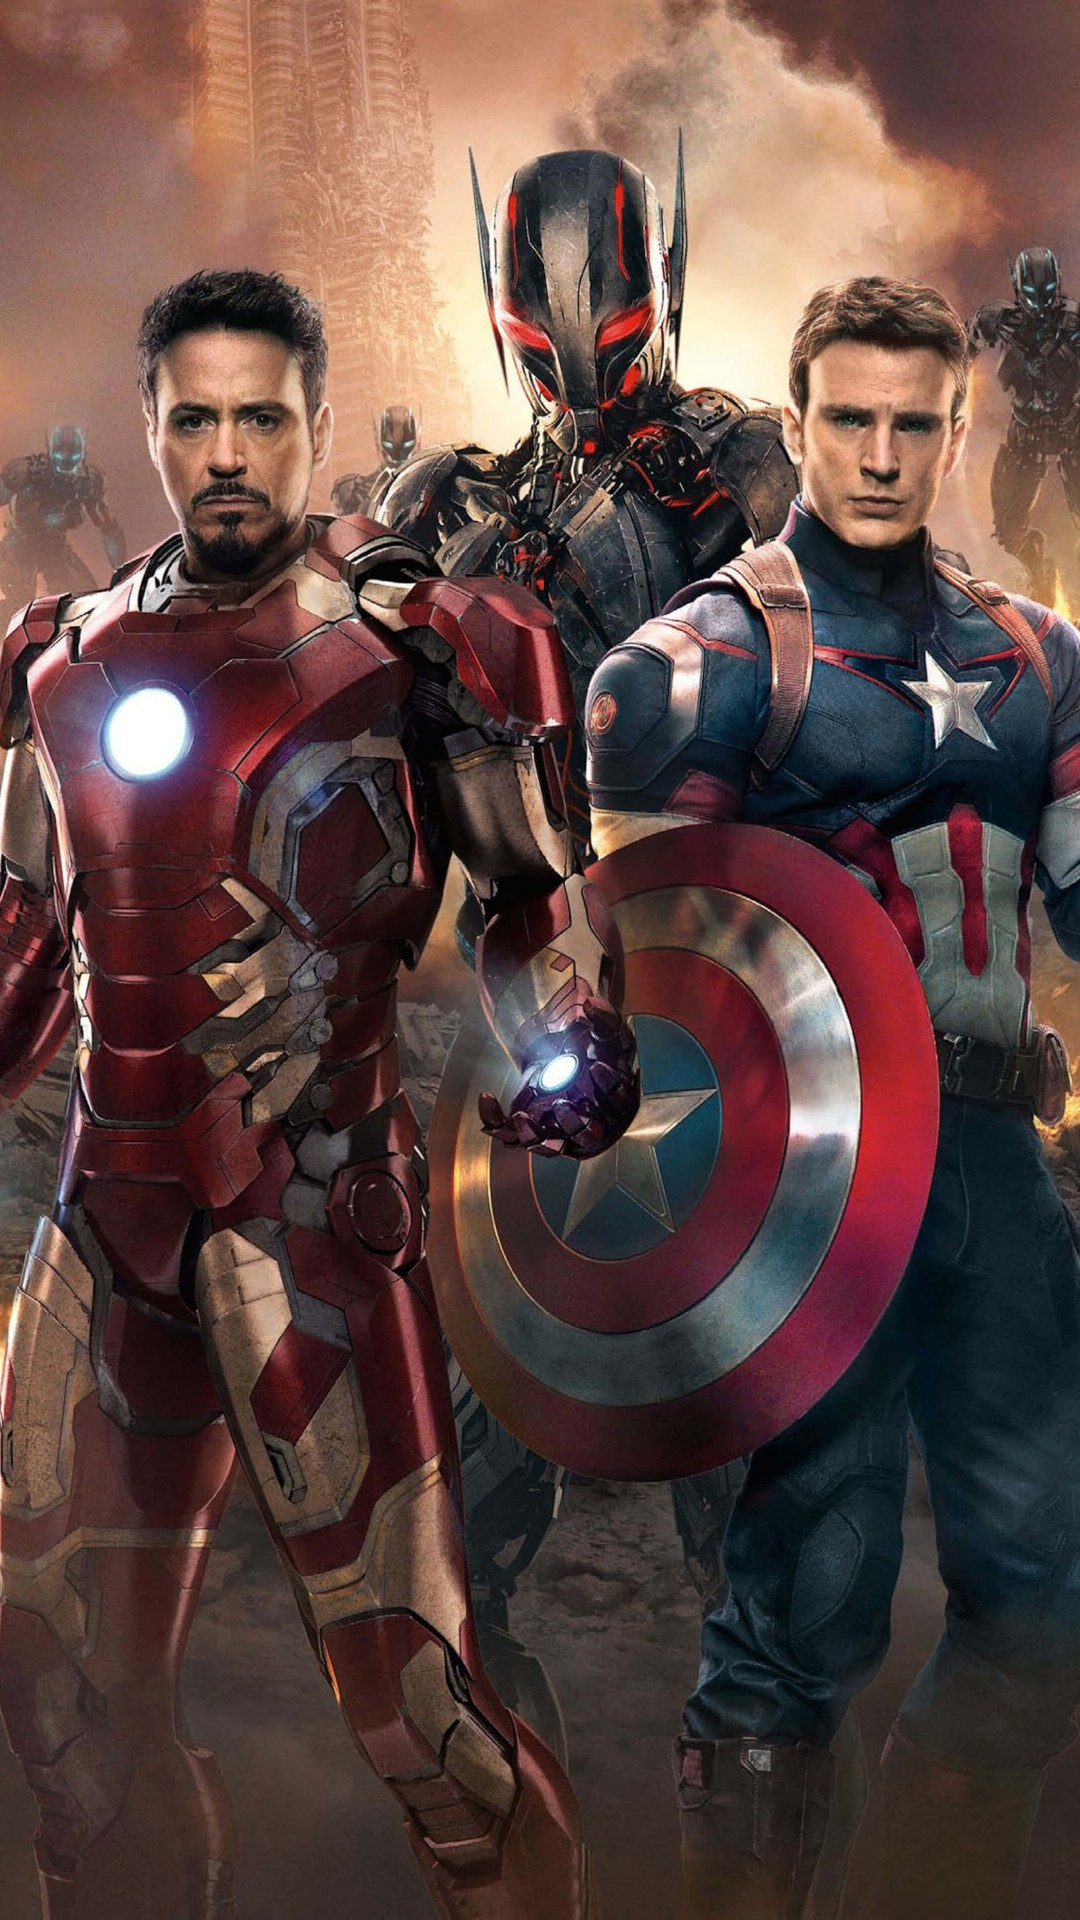 The Avengers: Age of Ultron - Iron Man and Captain America Wallpaper for SAMSUNG Galaxy Note 3